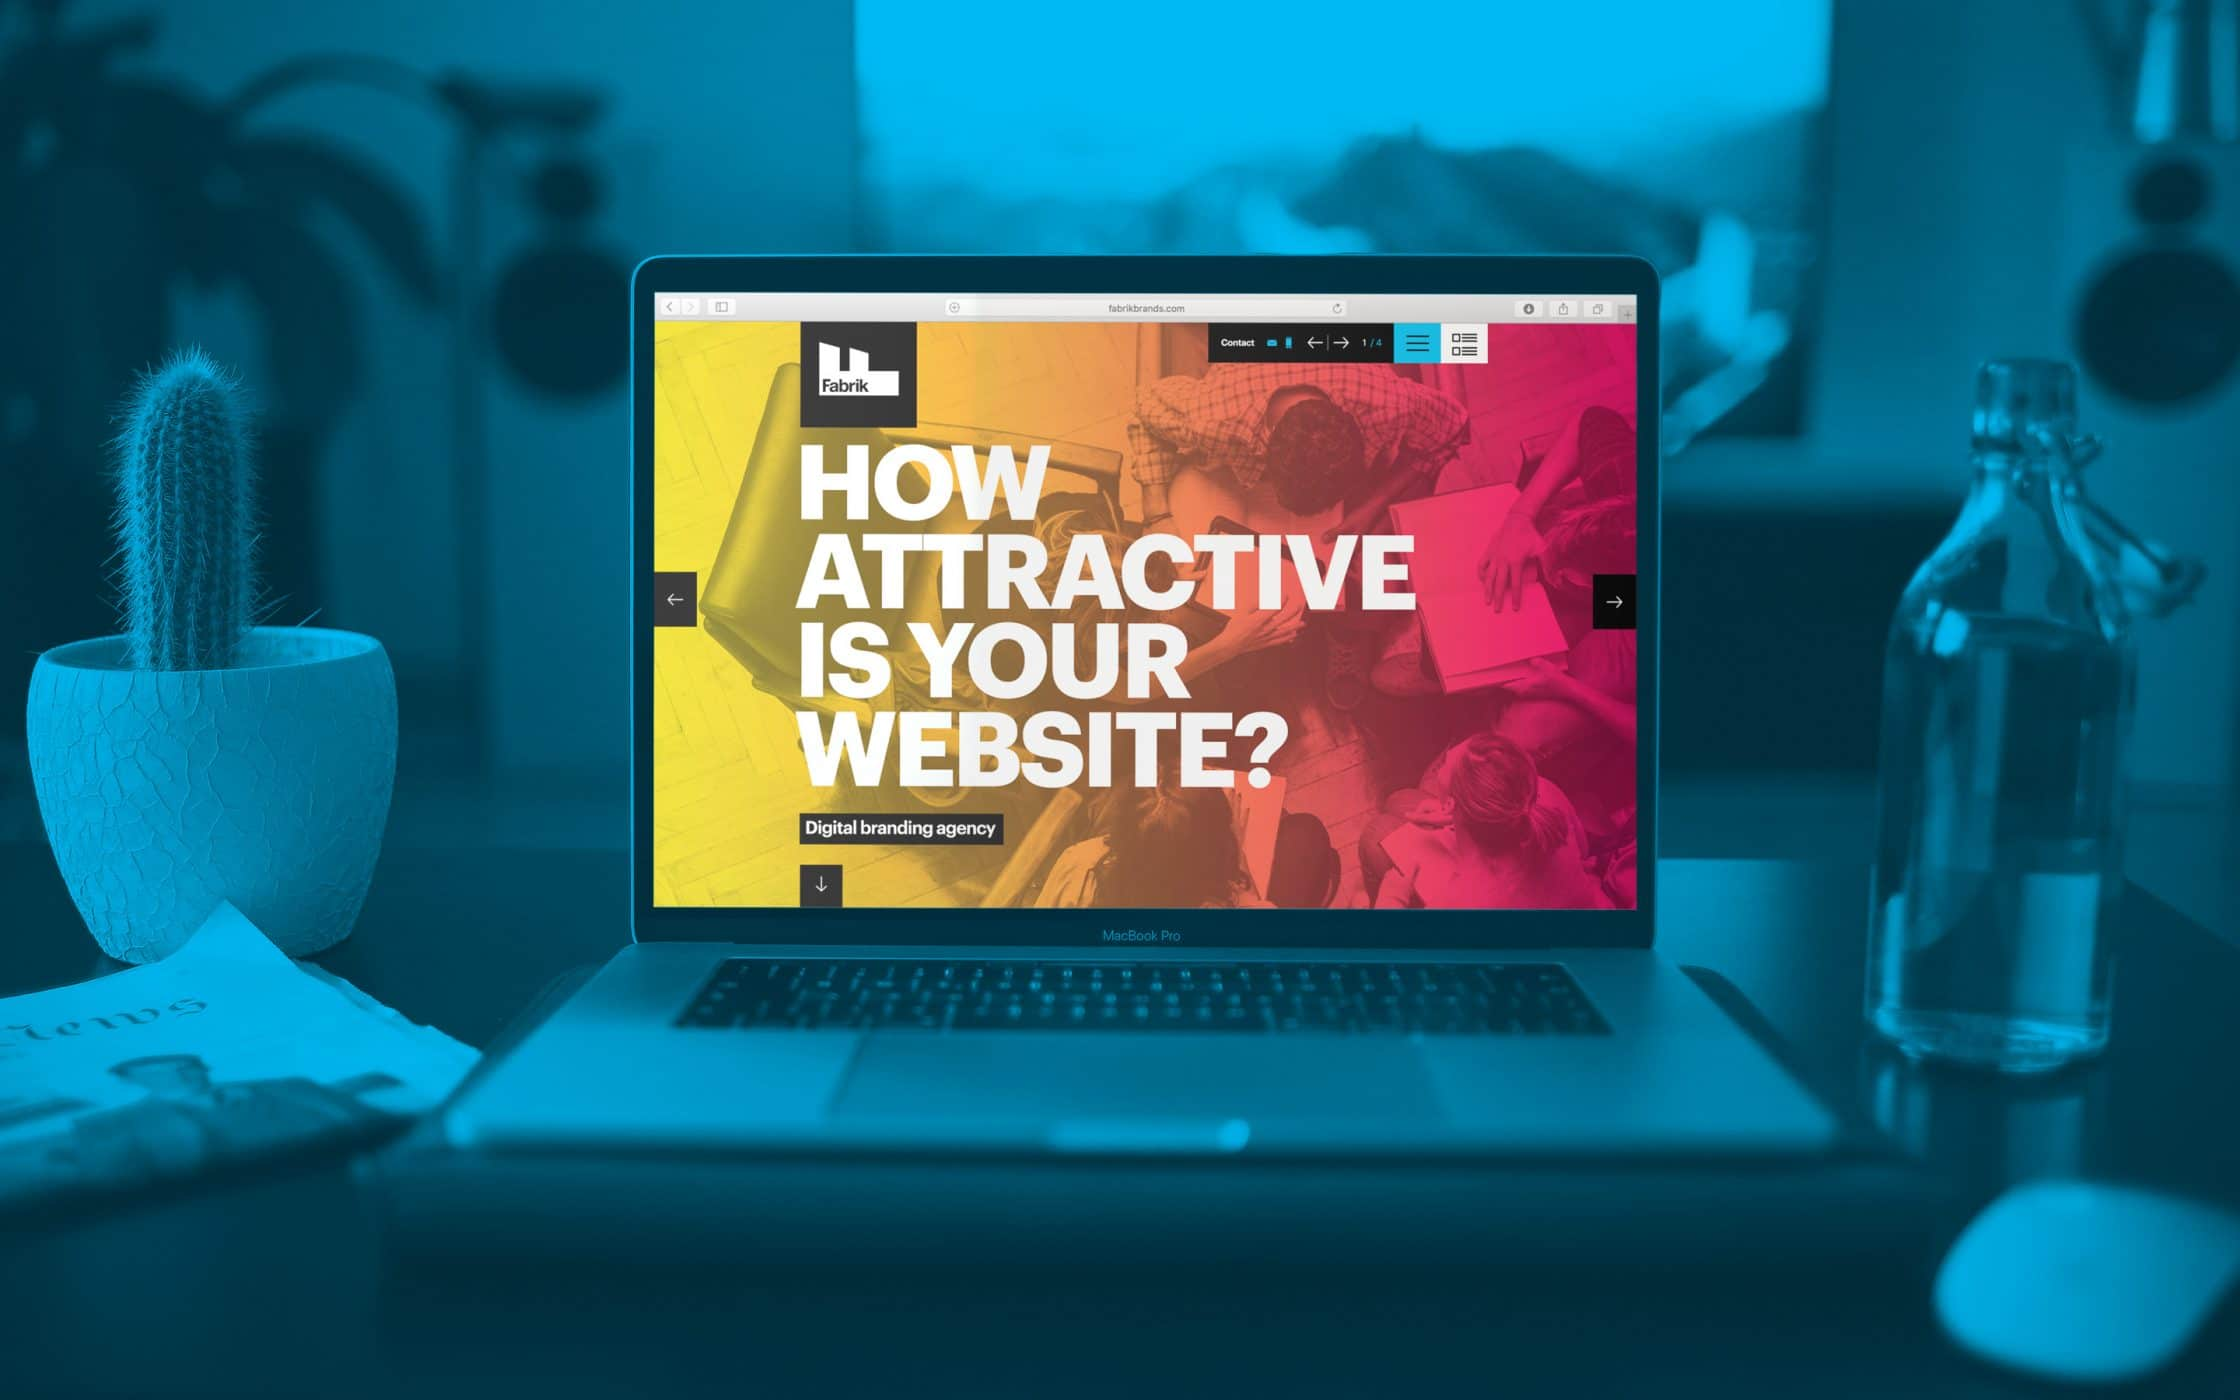 Web Design Trends 2017: 15 Contemporary Examples To Make You Think